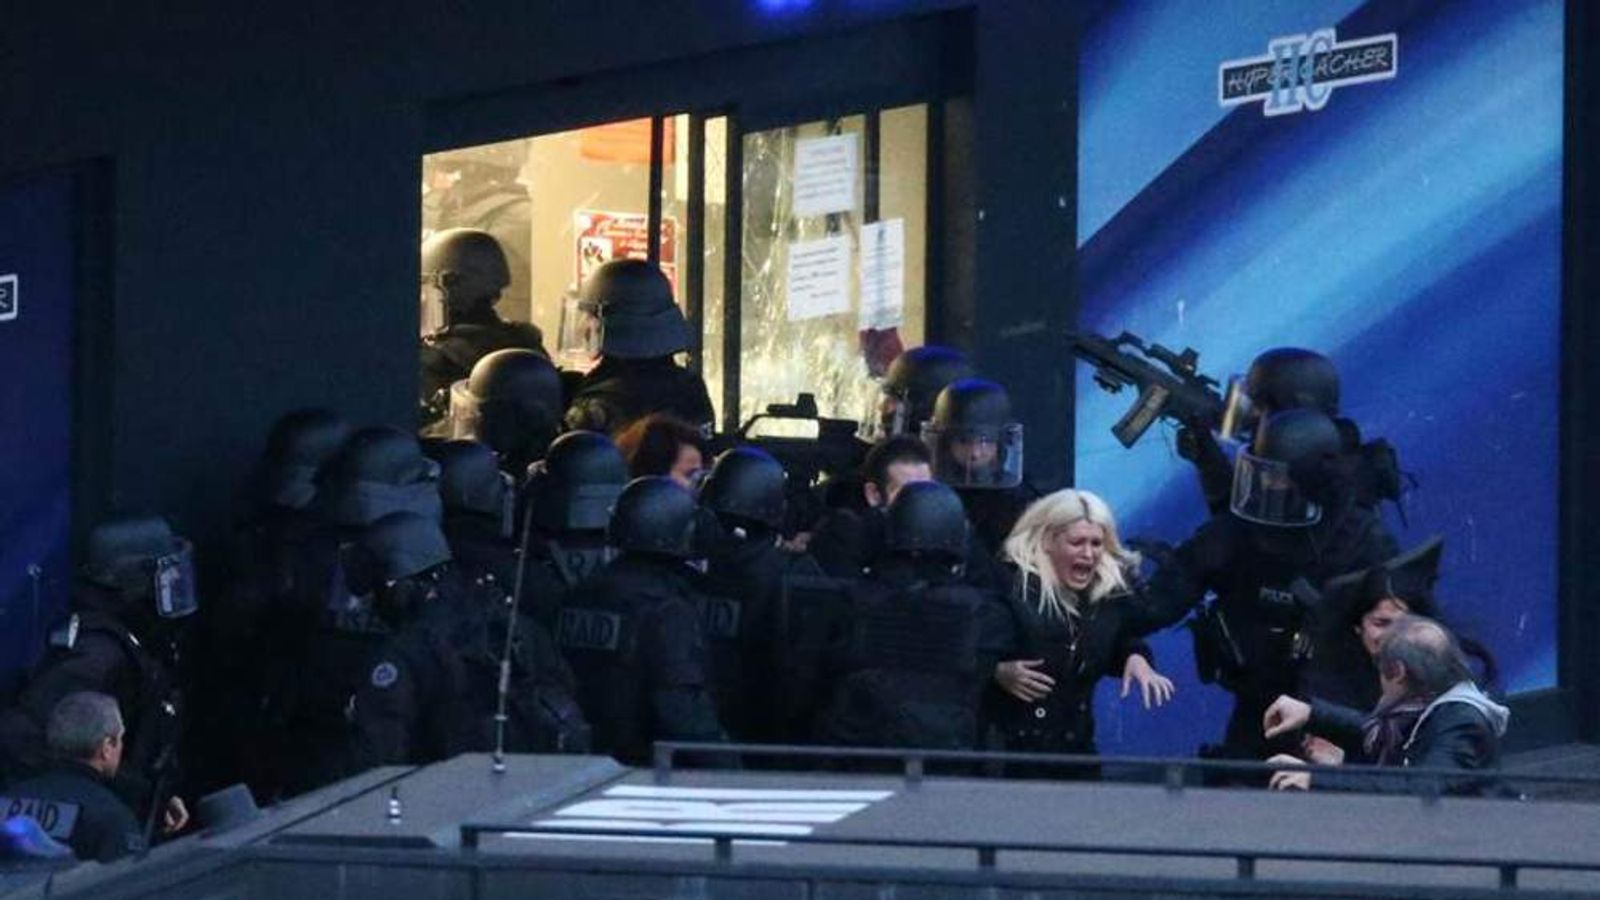 Paris attack on kosher supermarket